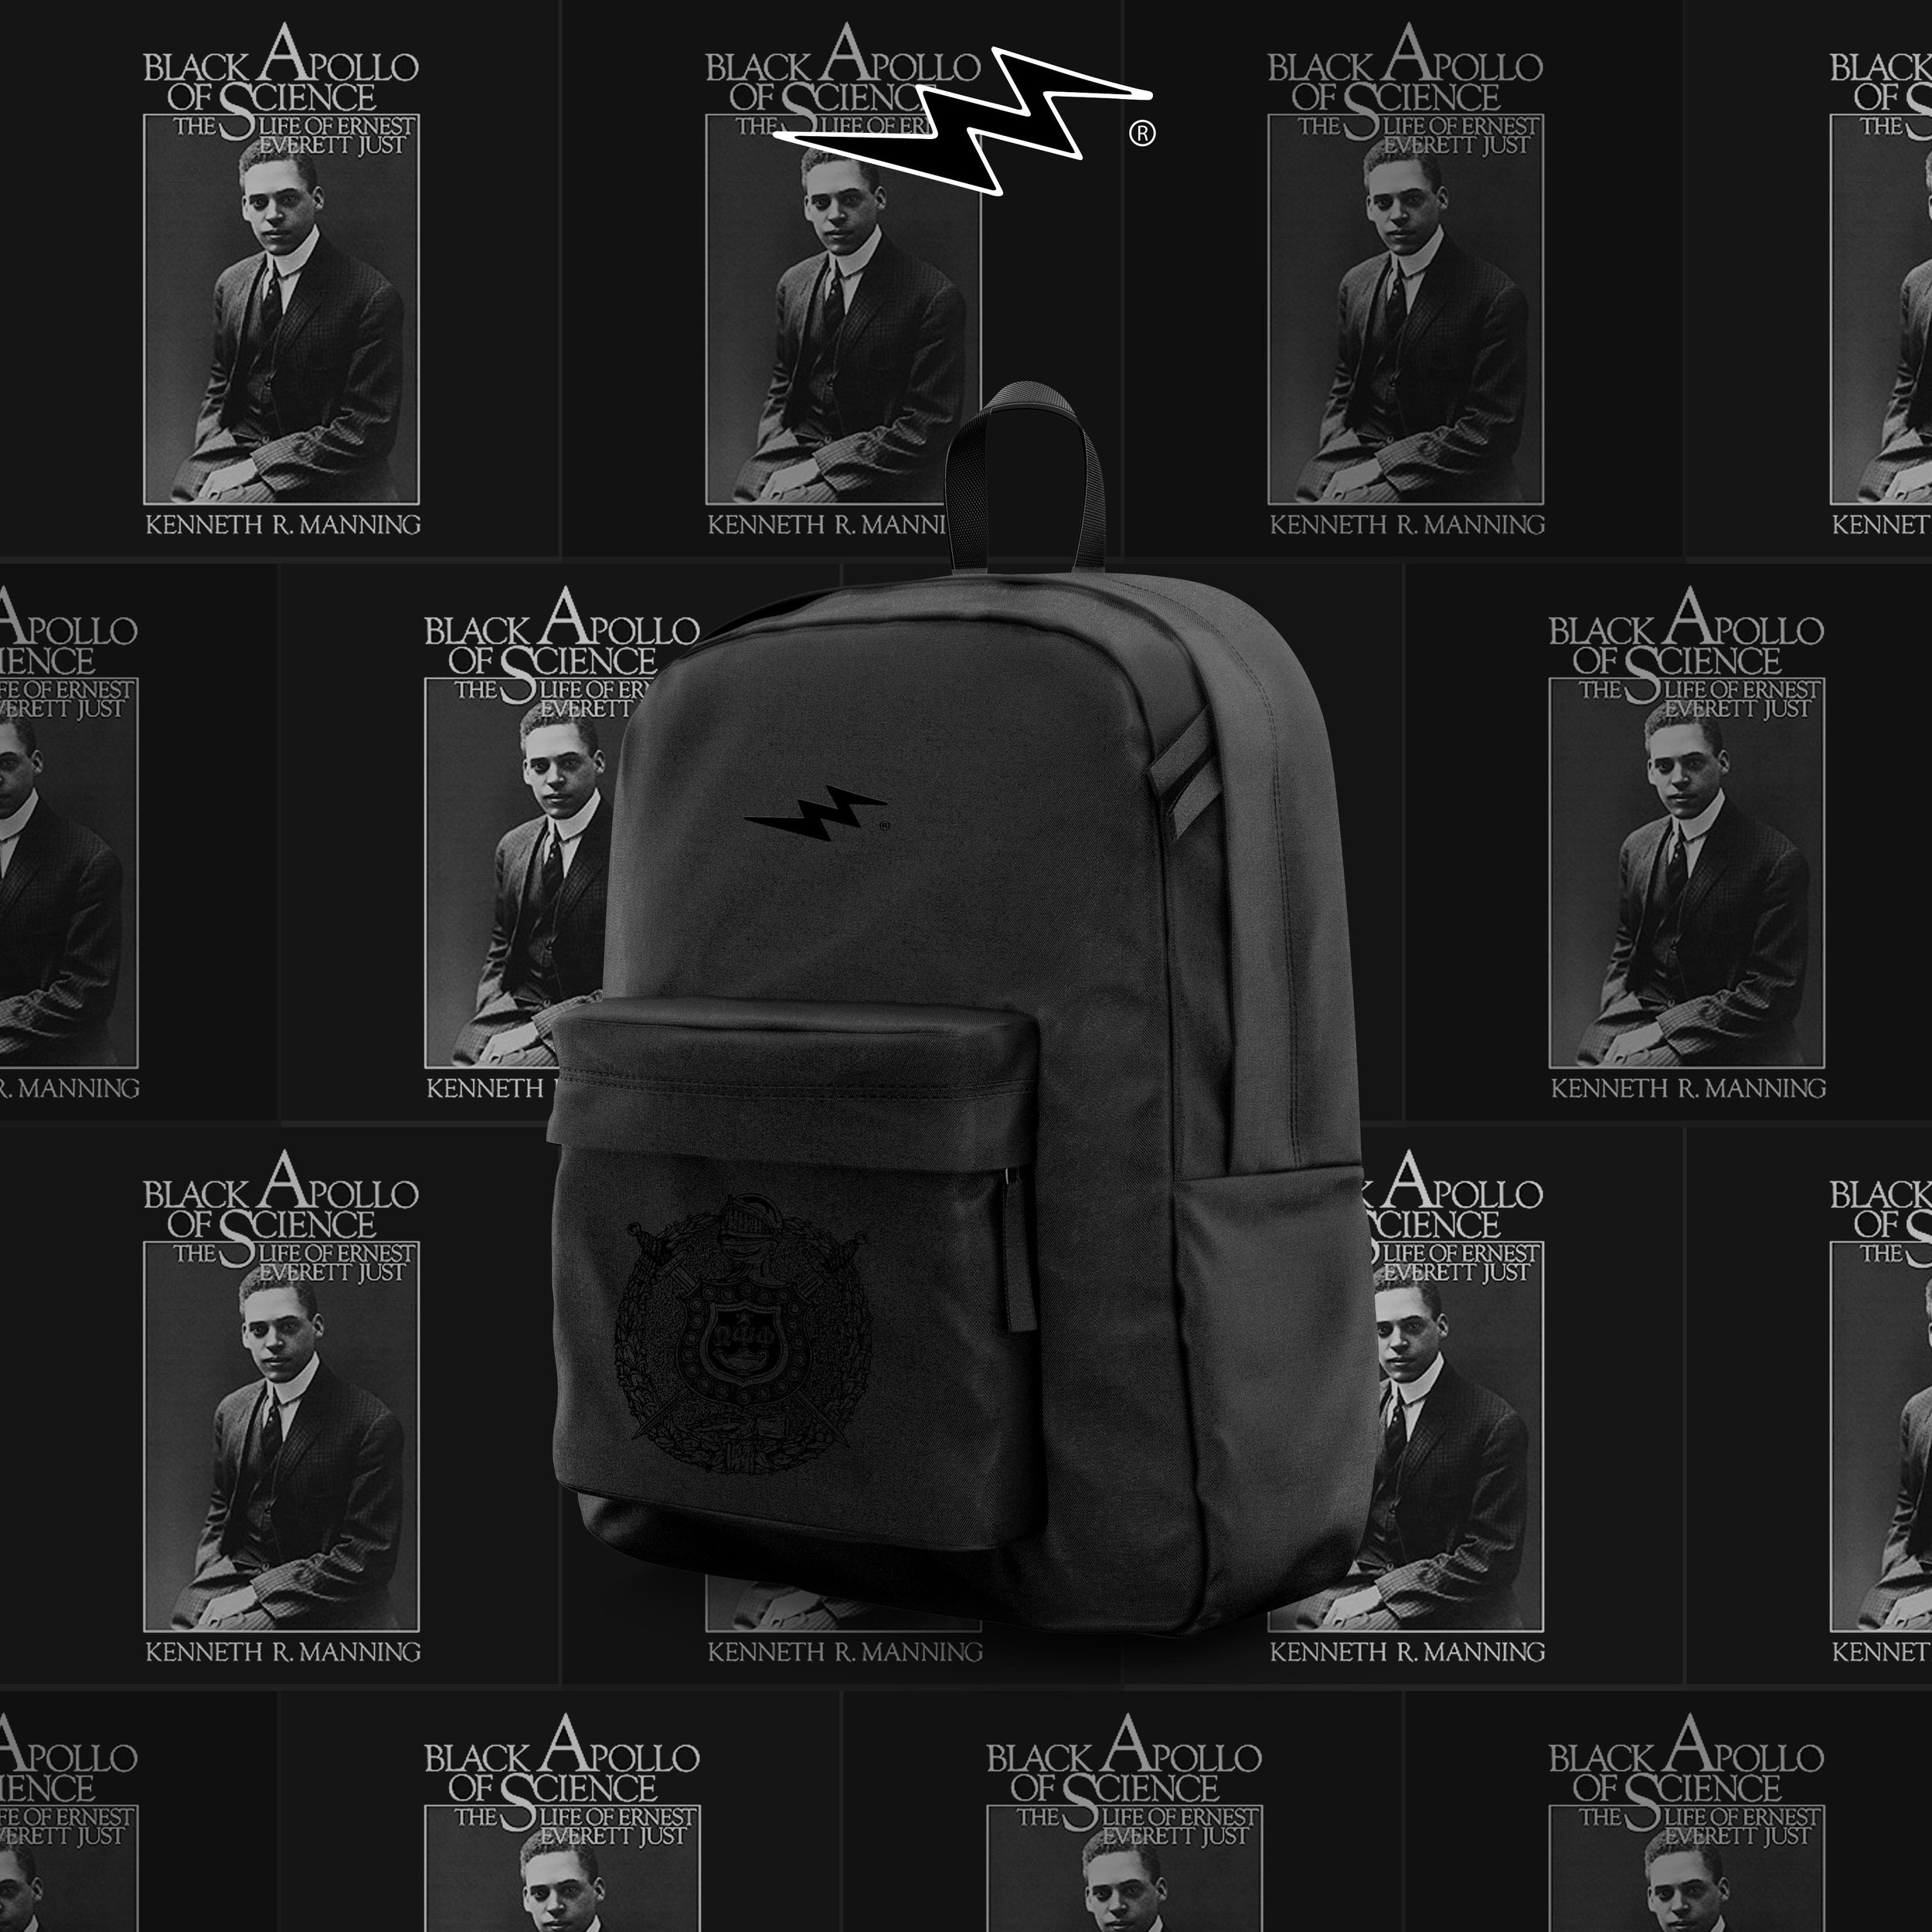 BlackAppolloBackpack .JPG